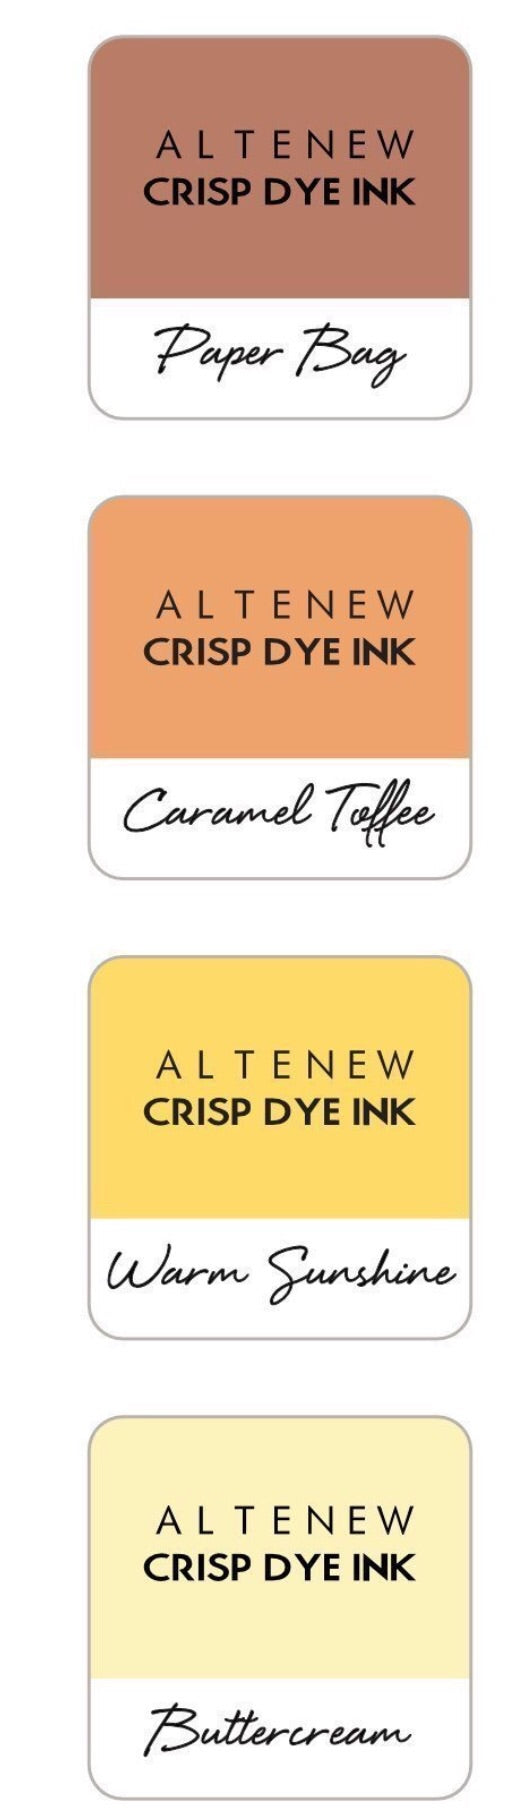 Altenew Crisp Dye Inks- Summer Afternoon